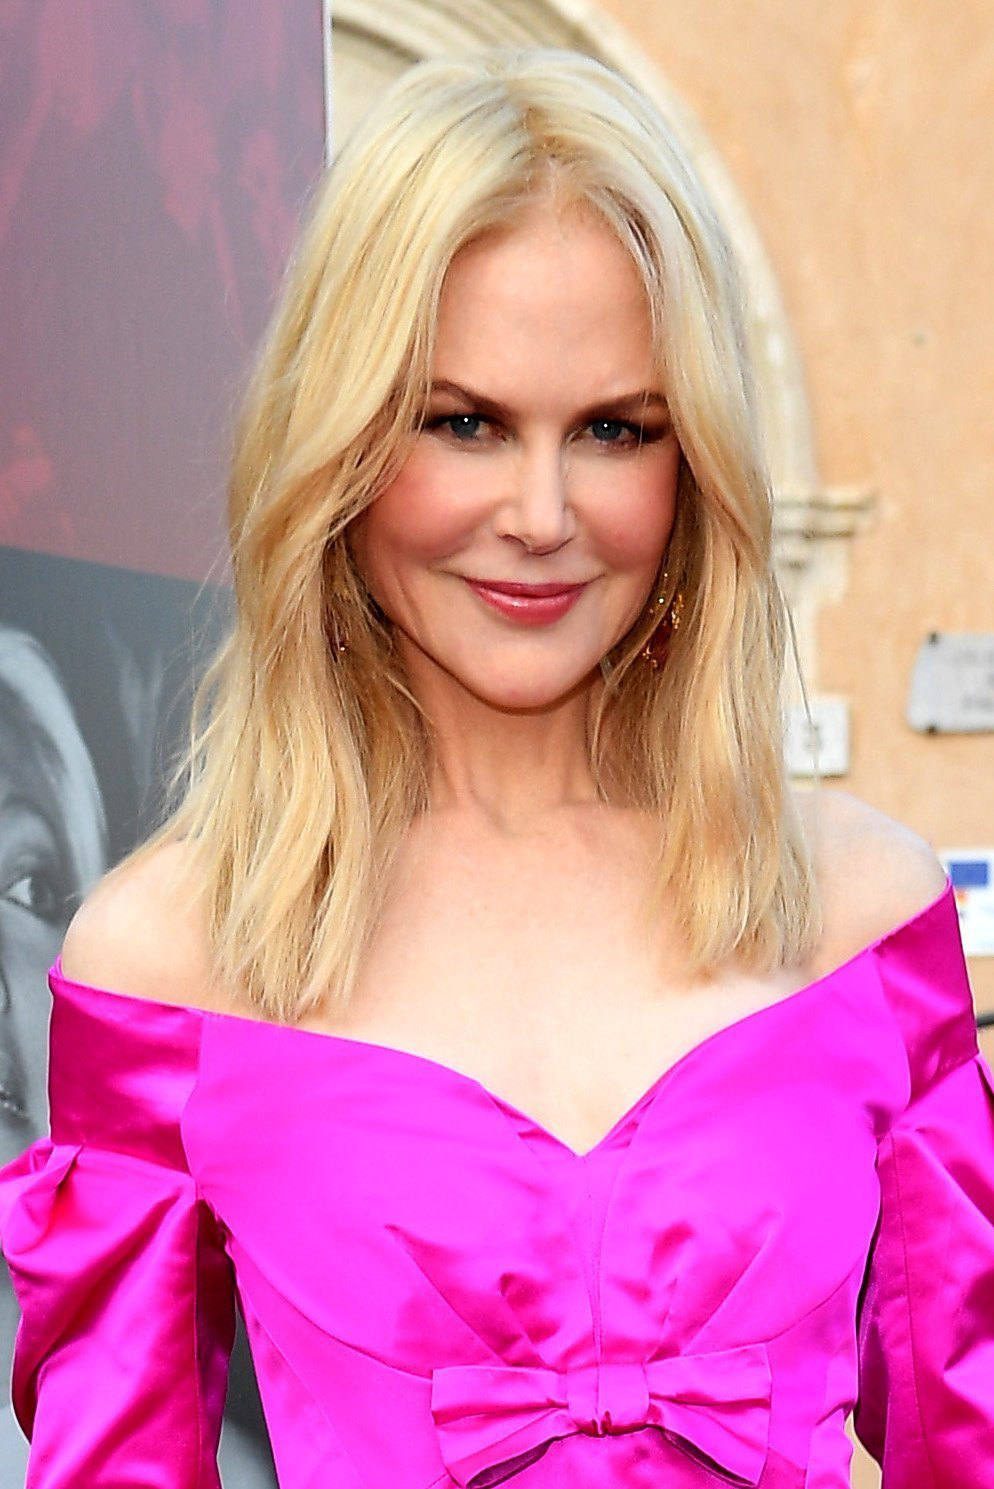 Nicole Kidman attends the 65th Taormina Film Fest Red Carpet on July 01, 2019, in Taormina, Italy. | Source: Getty Images.